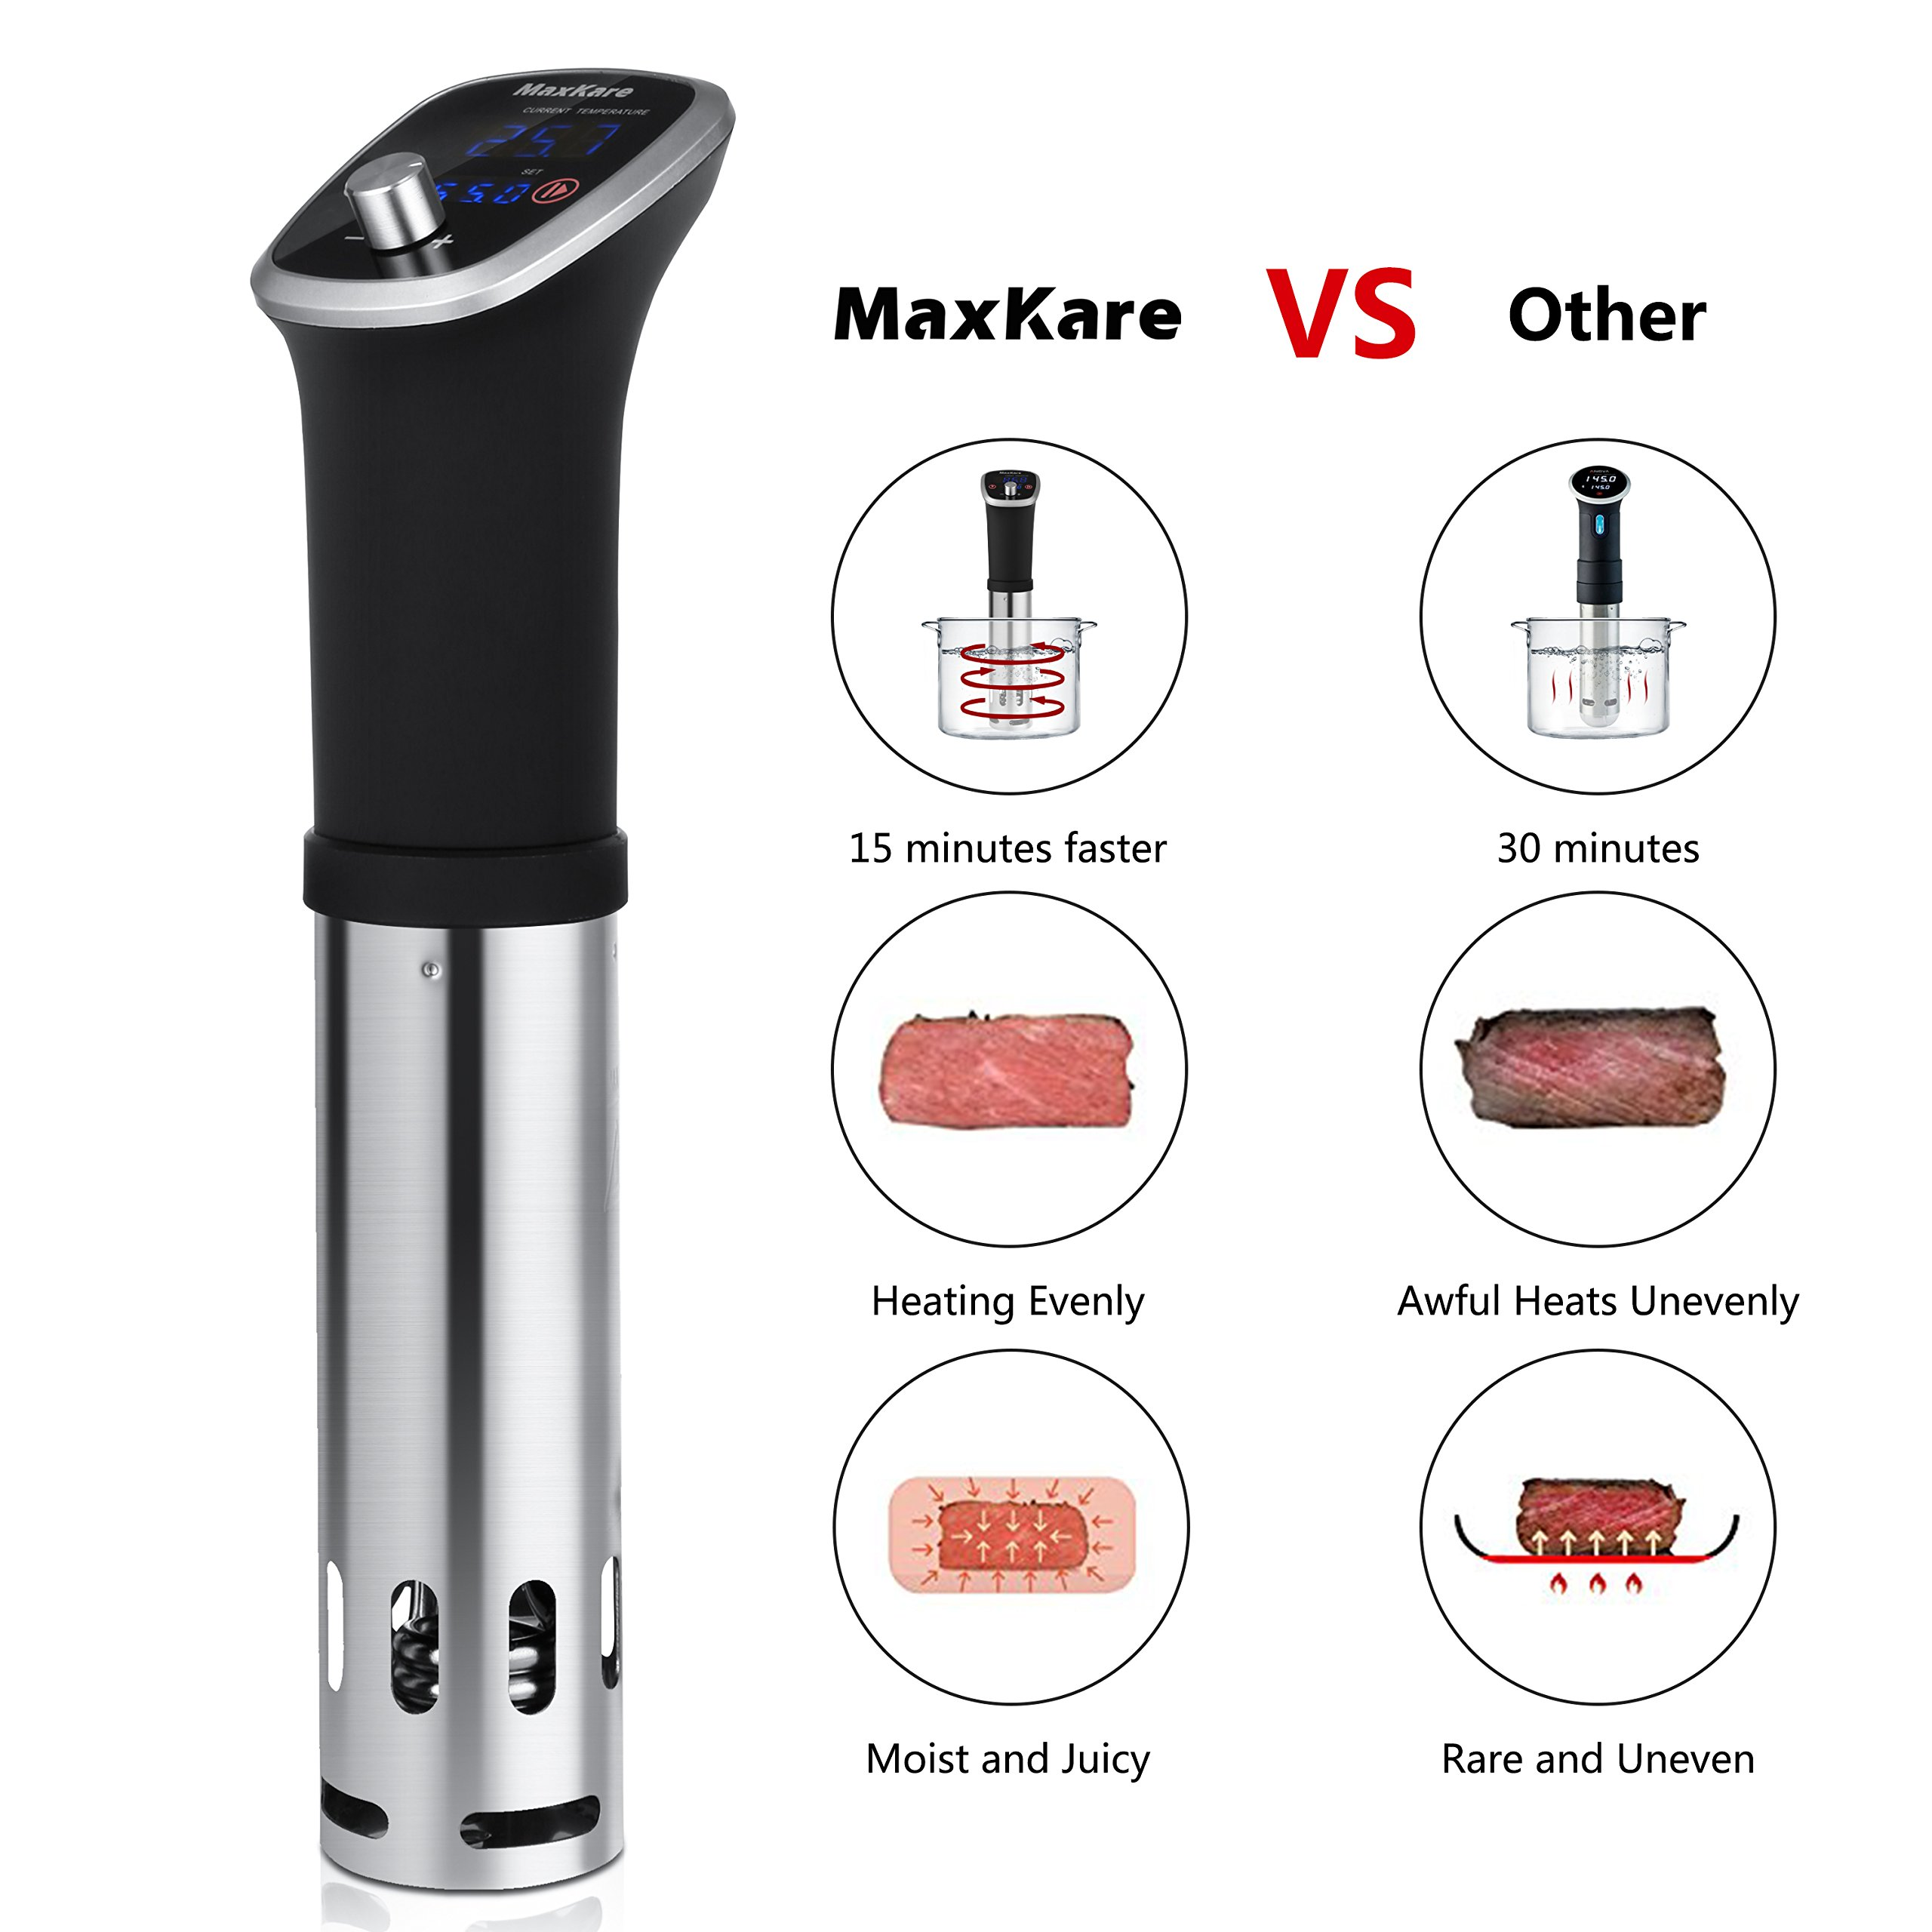 MaxKare Sous Vide Precision Cooker with Immersion Circulator, Double Digital Display Screens, Stainless Steel, Precise Temperature/Time Control for Quality Food at Home. Easy to Clean. by MaxKare (Image #5)